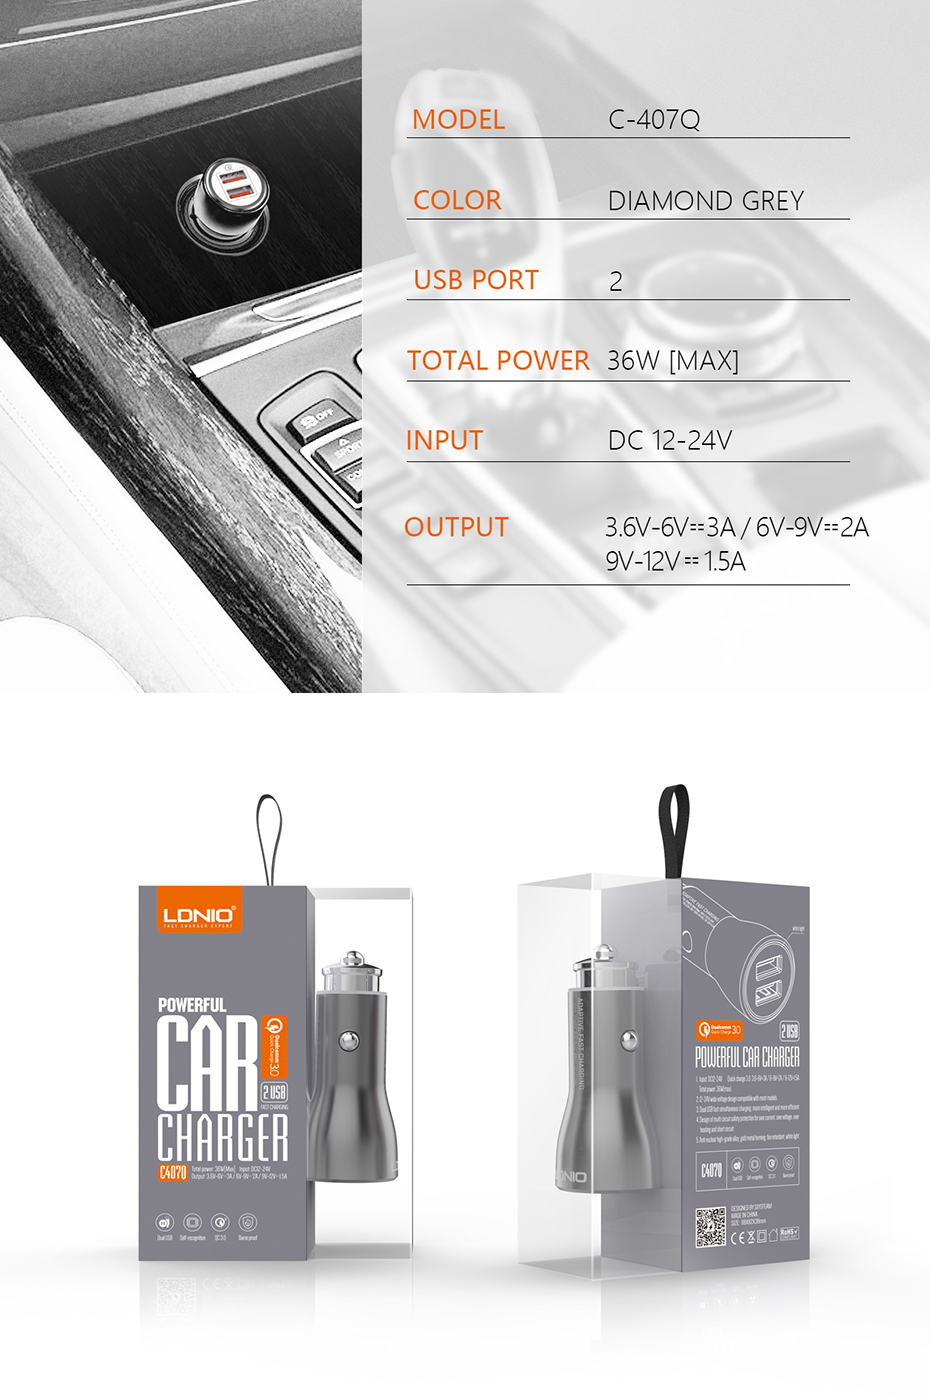 LDNIO Car charger (10)